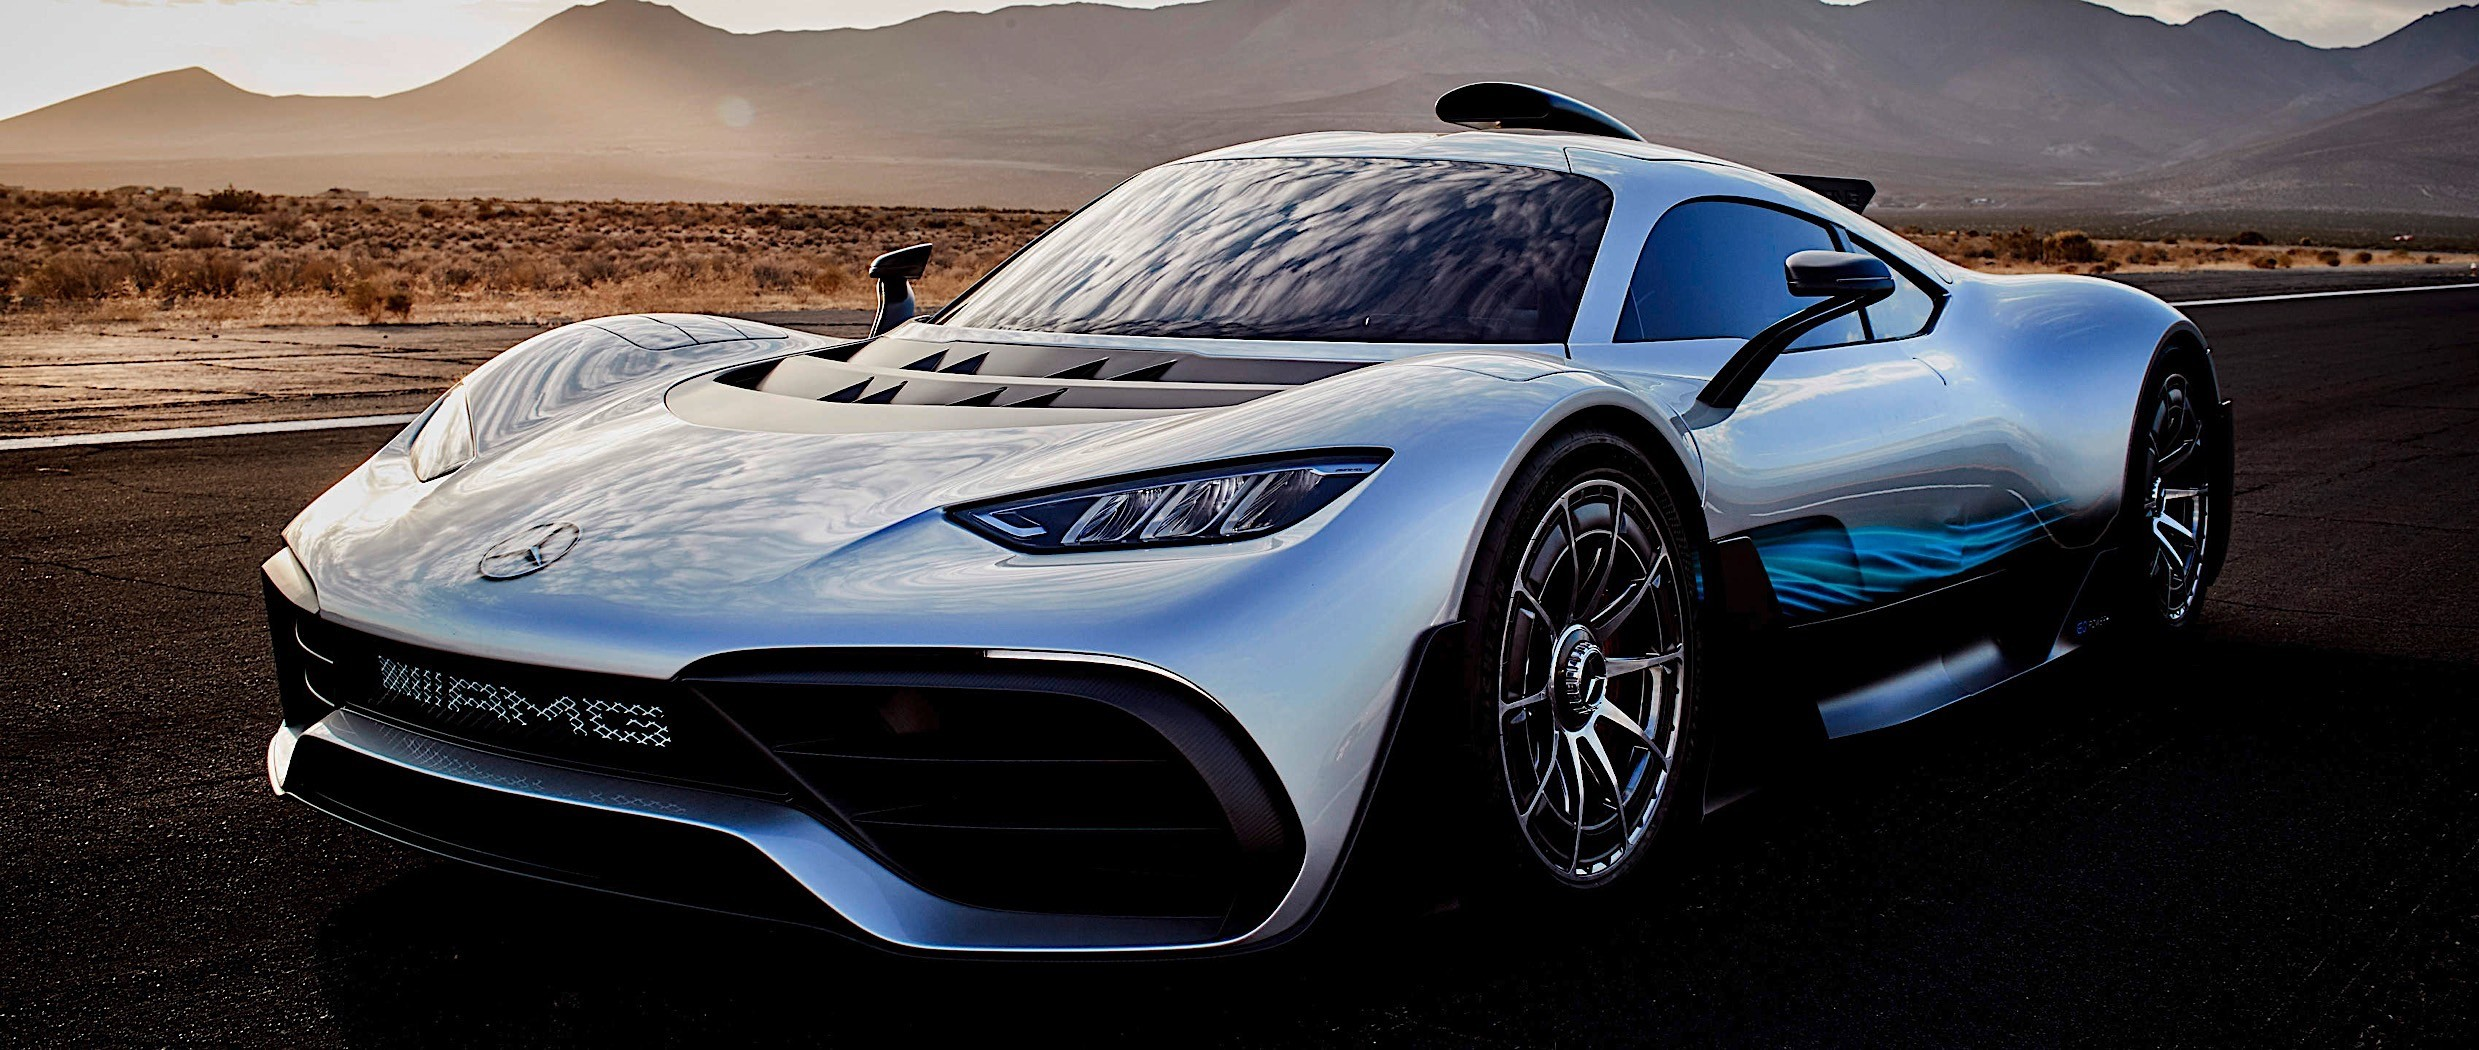 F1 2017 Car Wallpaper Mercedes Amg Project One Shines In New Wallpaper Gallery